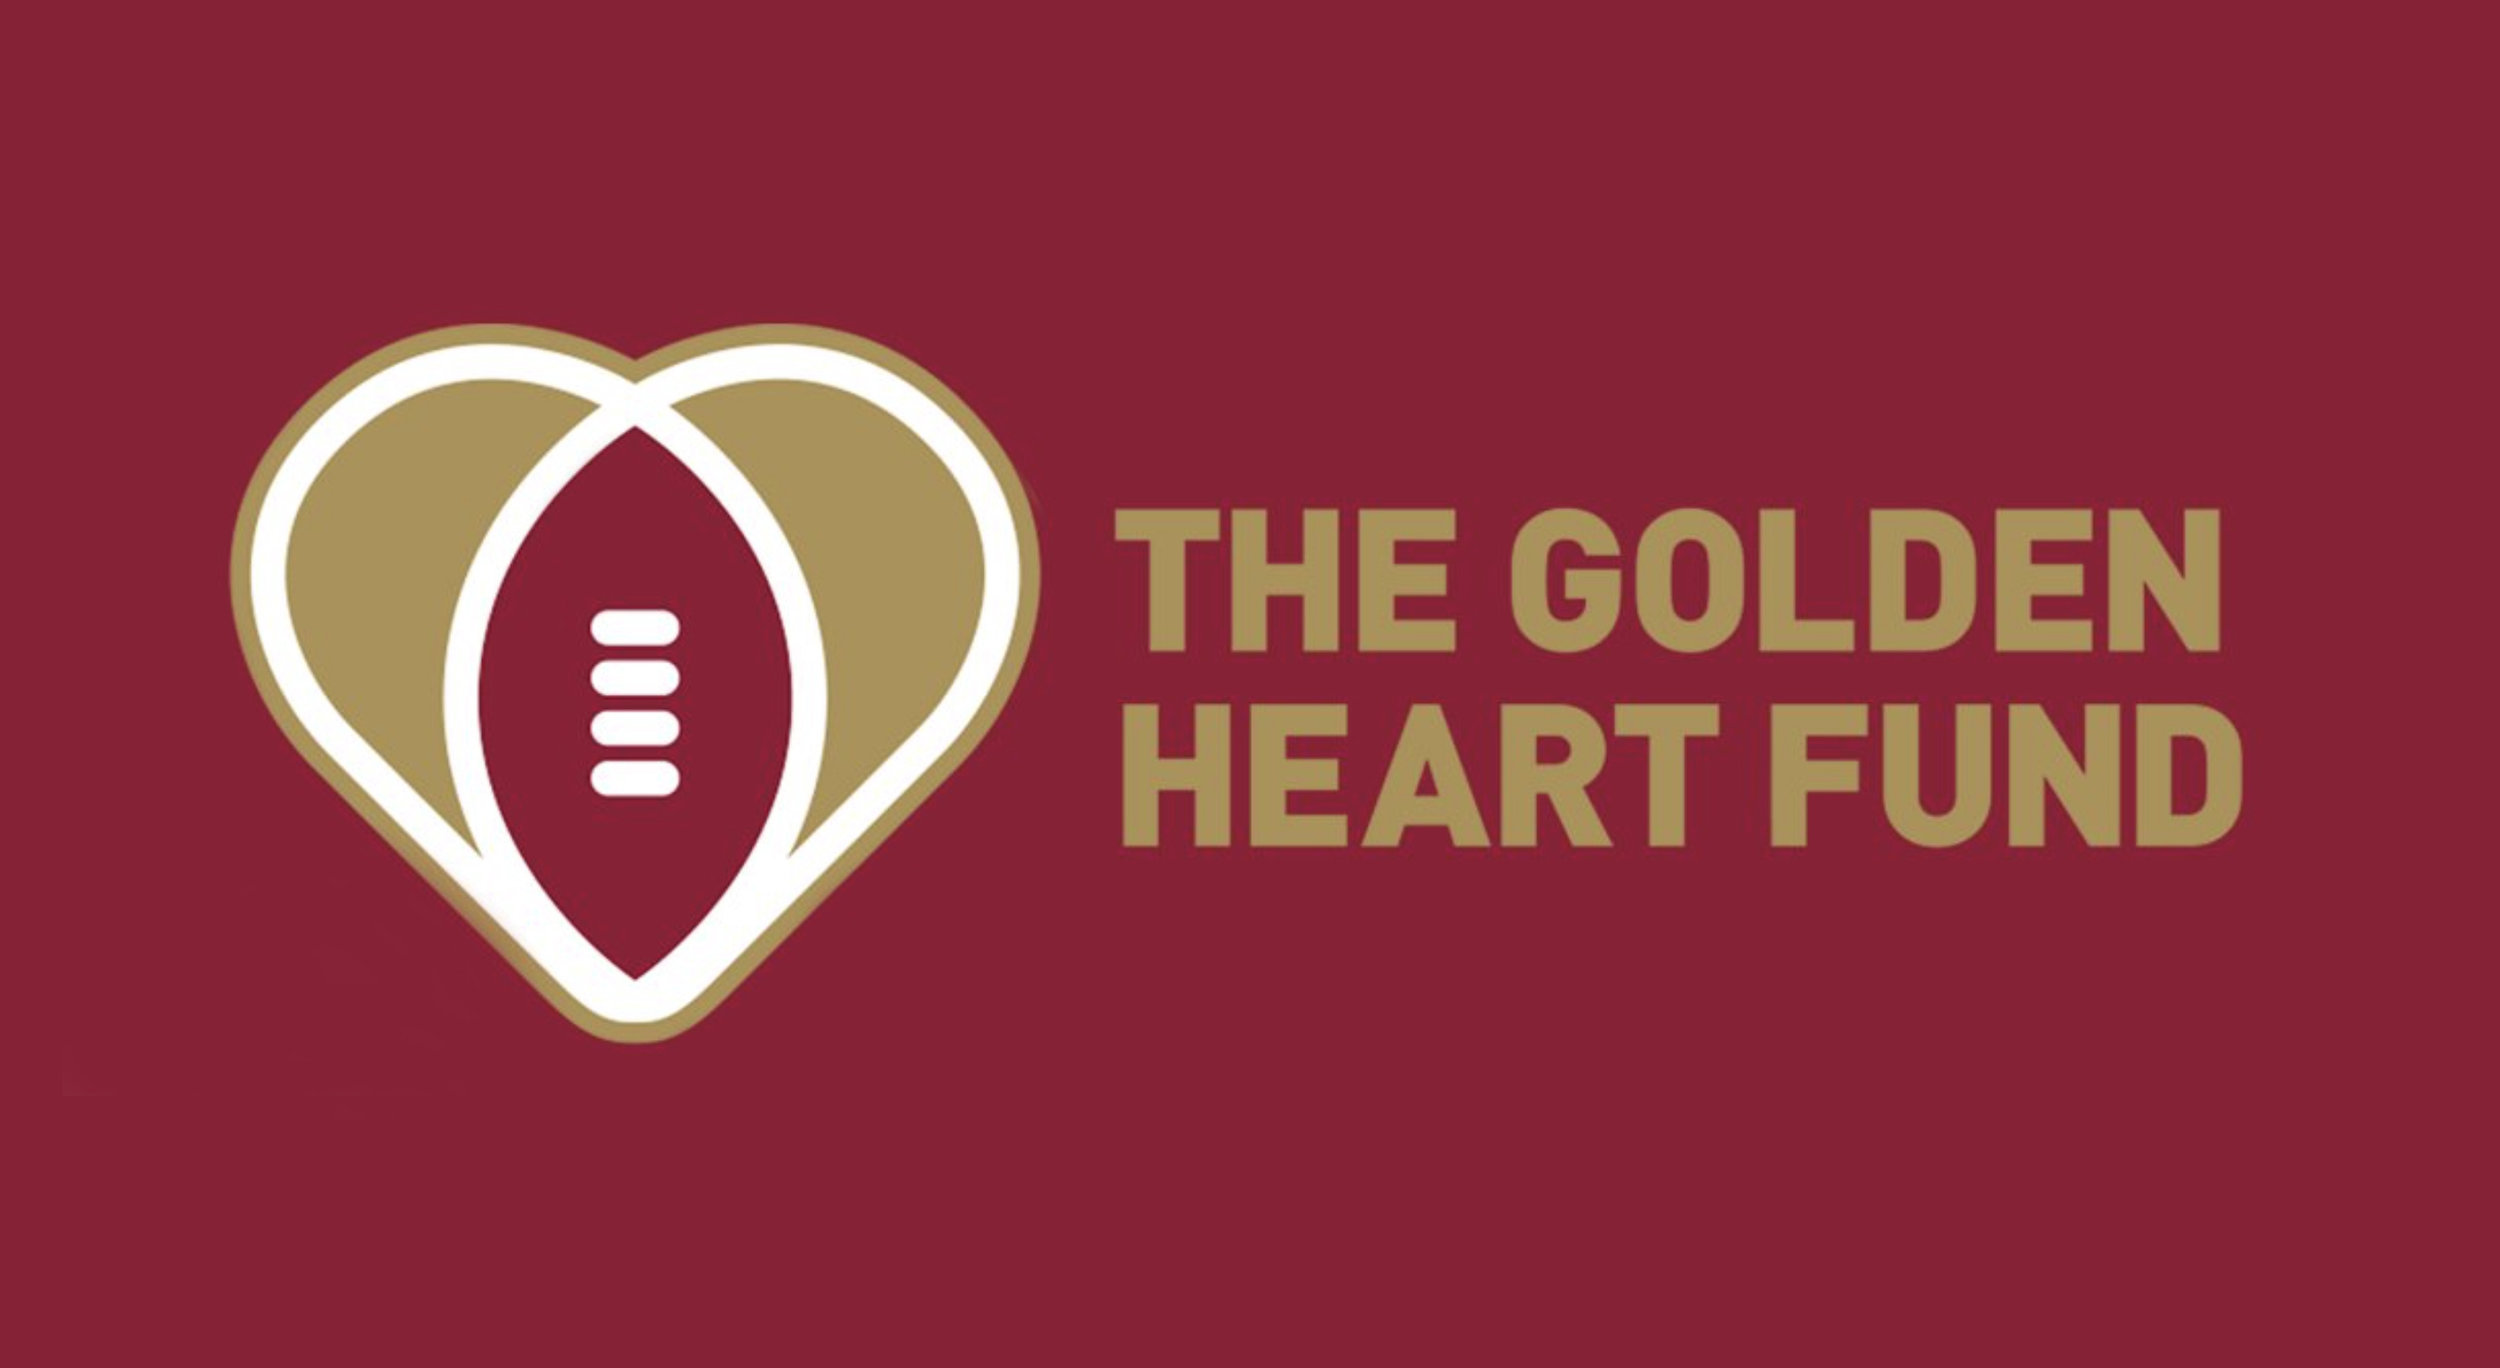 The Golden Heart Fund - 100% of the book royalties will be donated to the Golden Heart Fund.